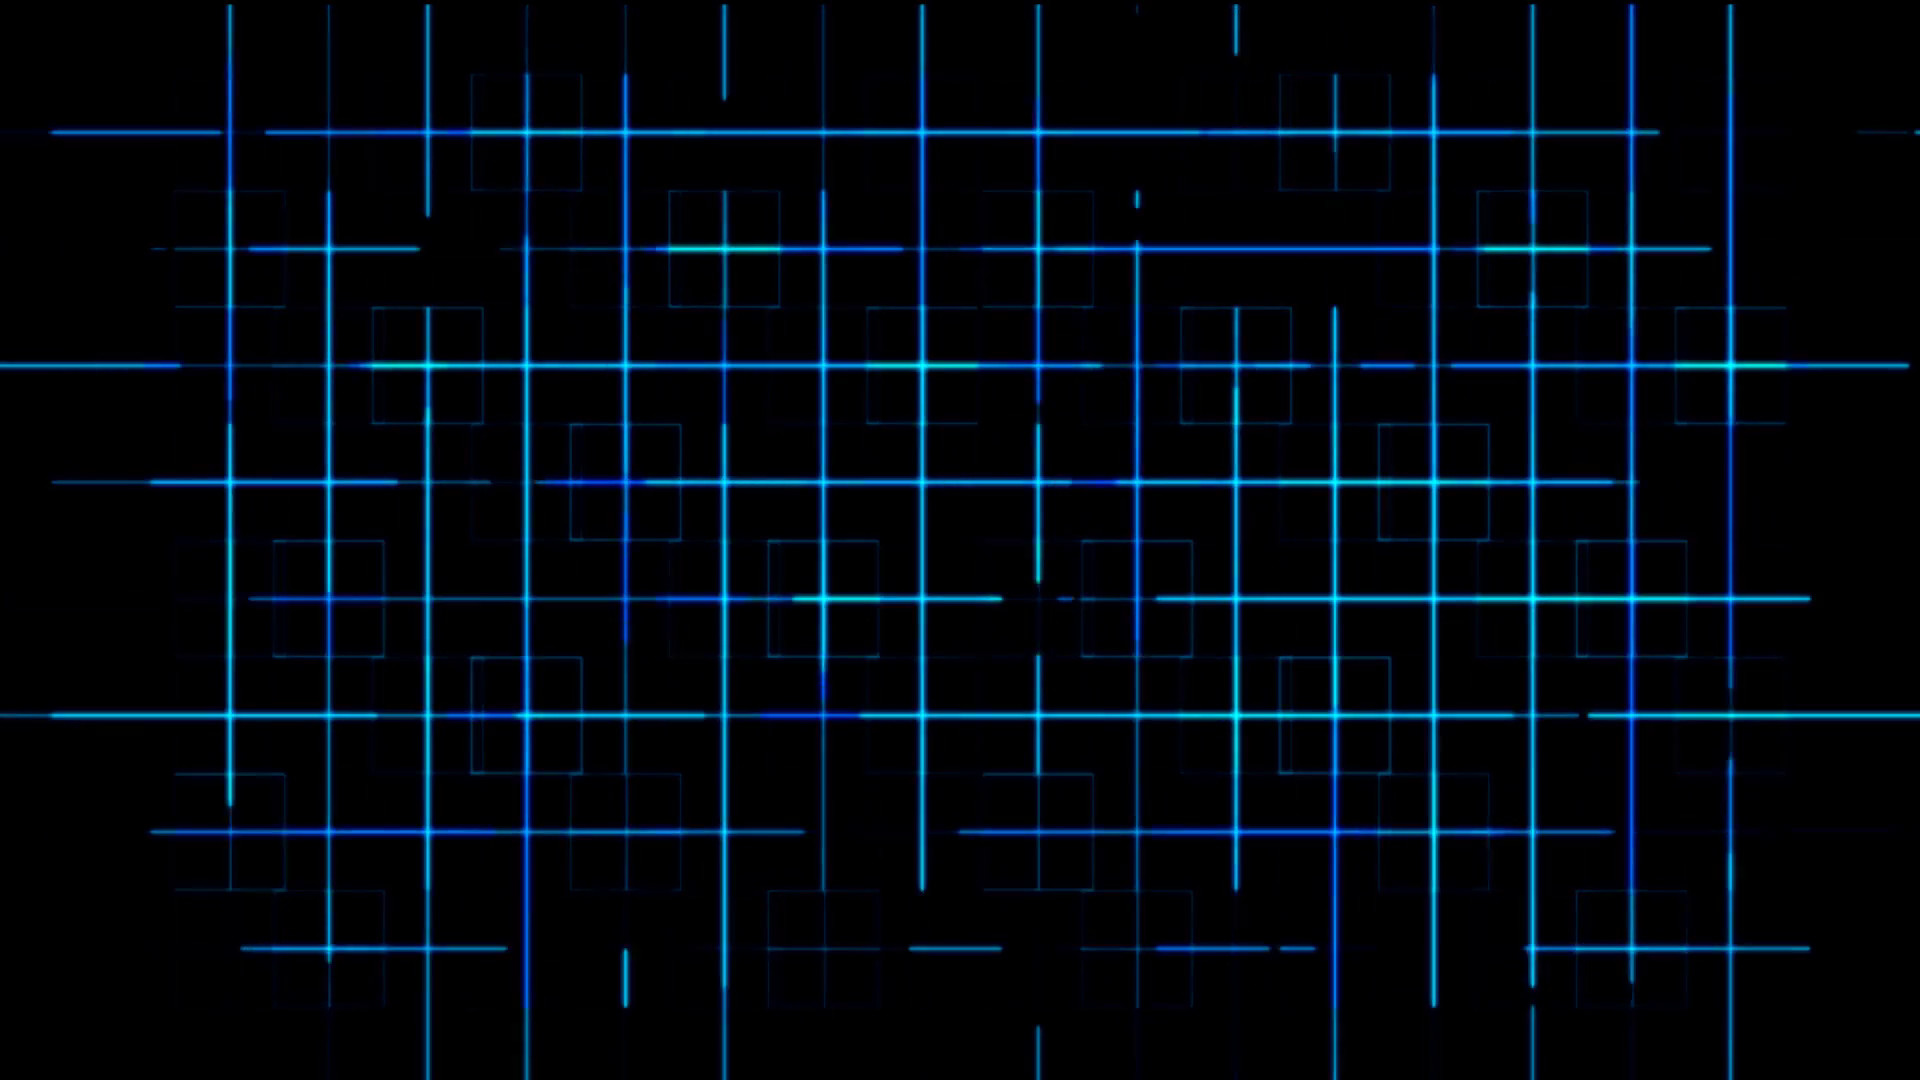 how to set grid background image wpf